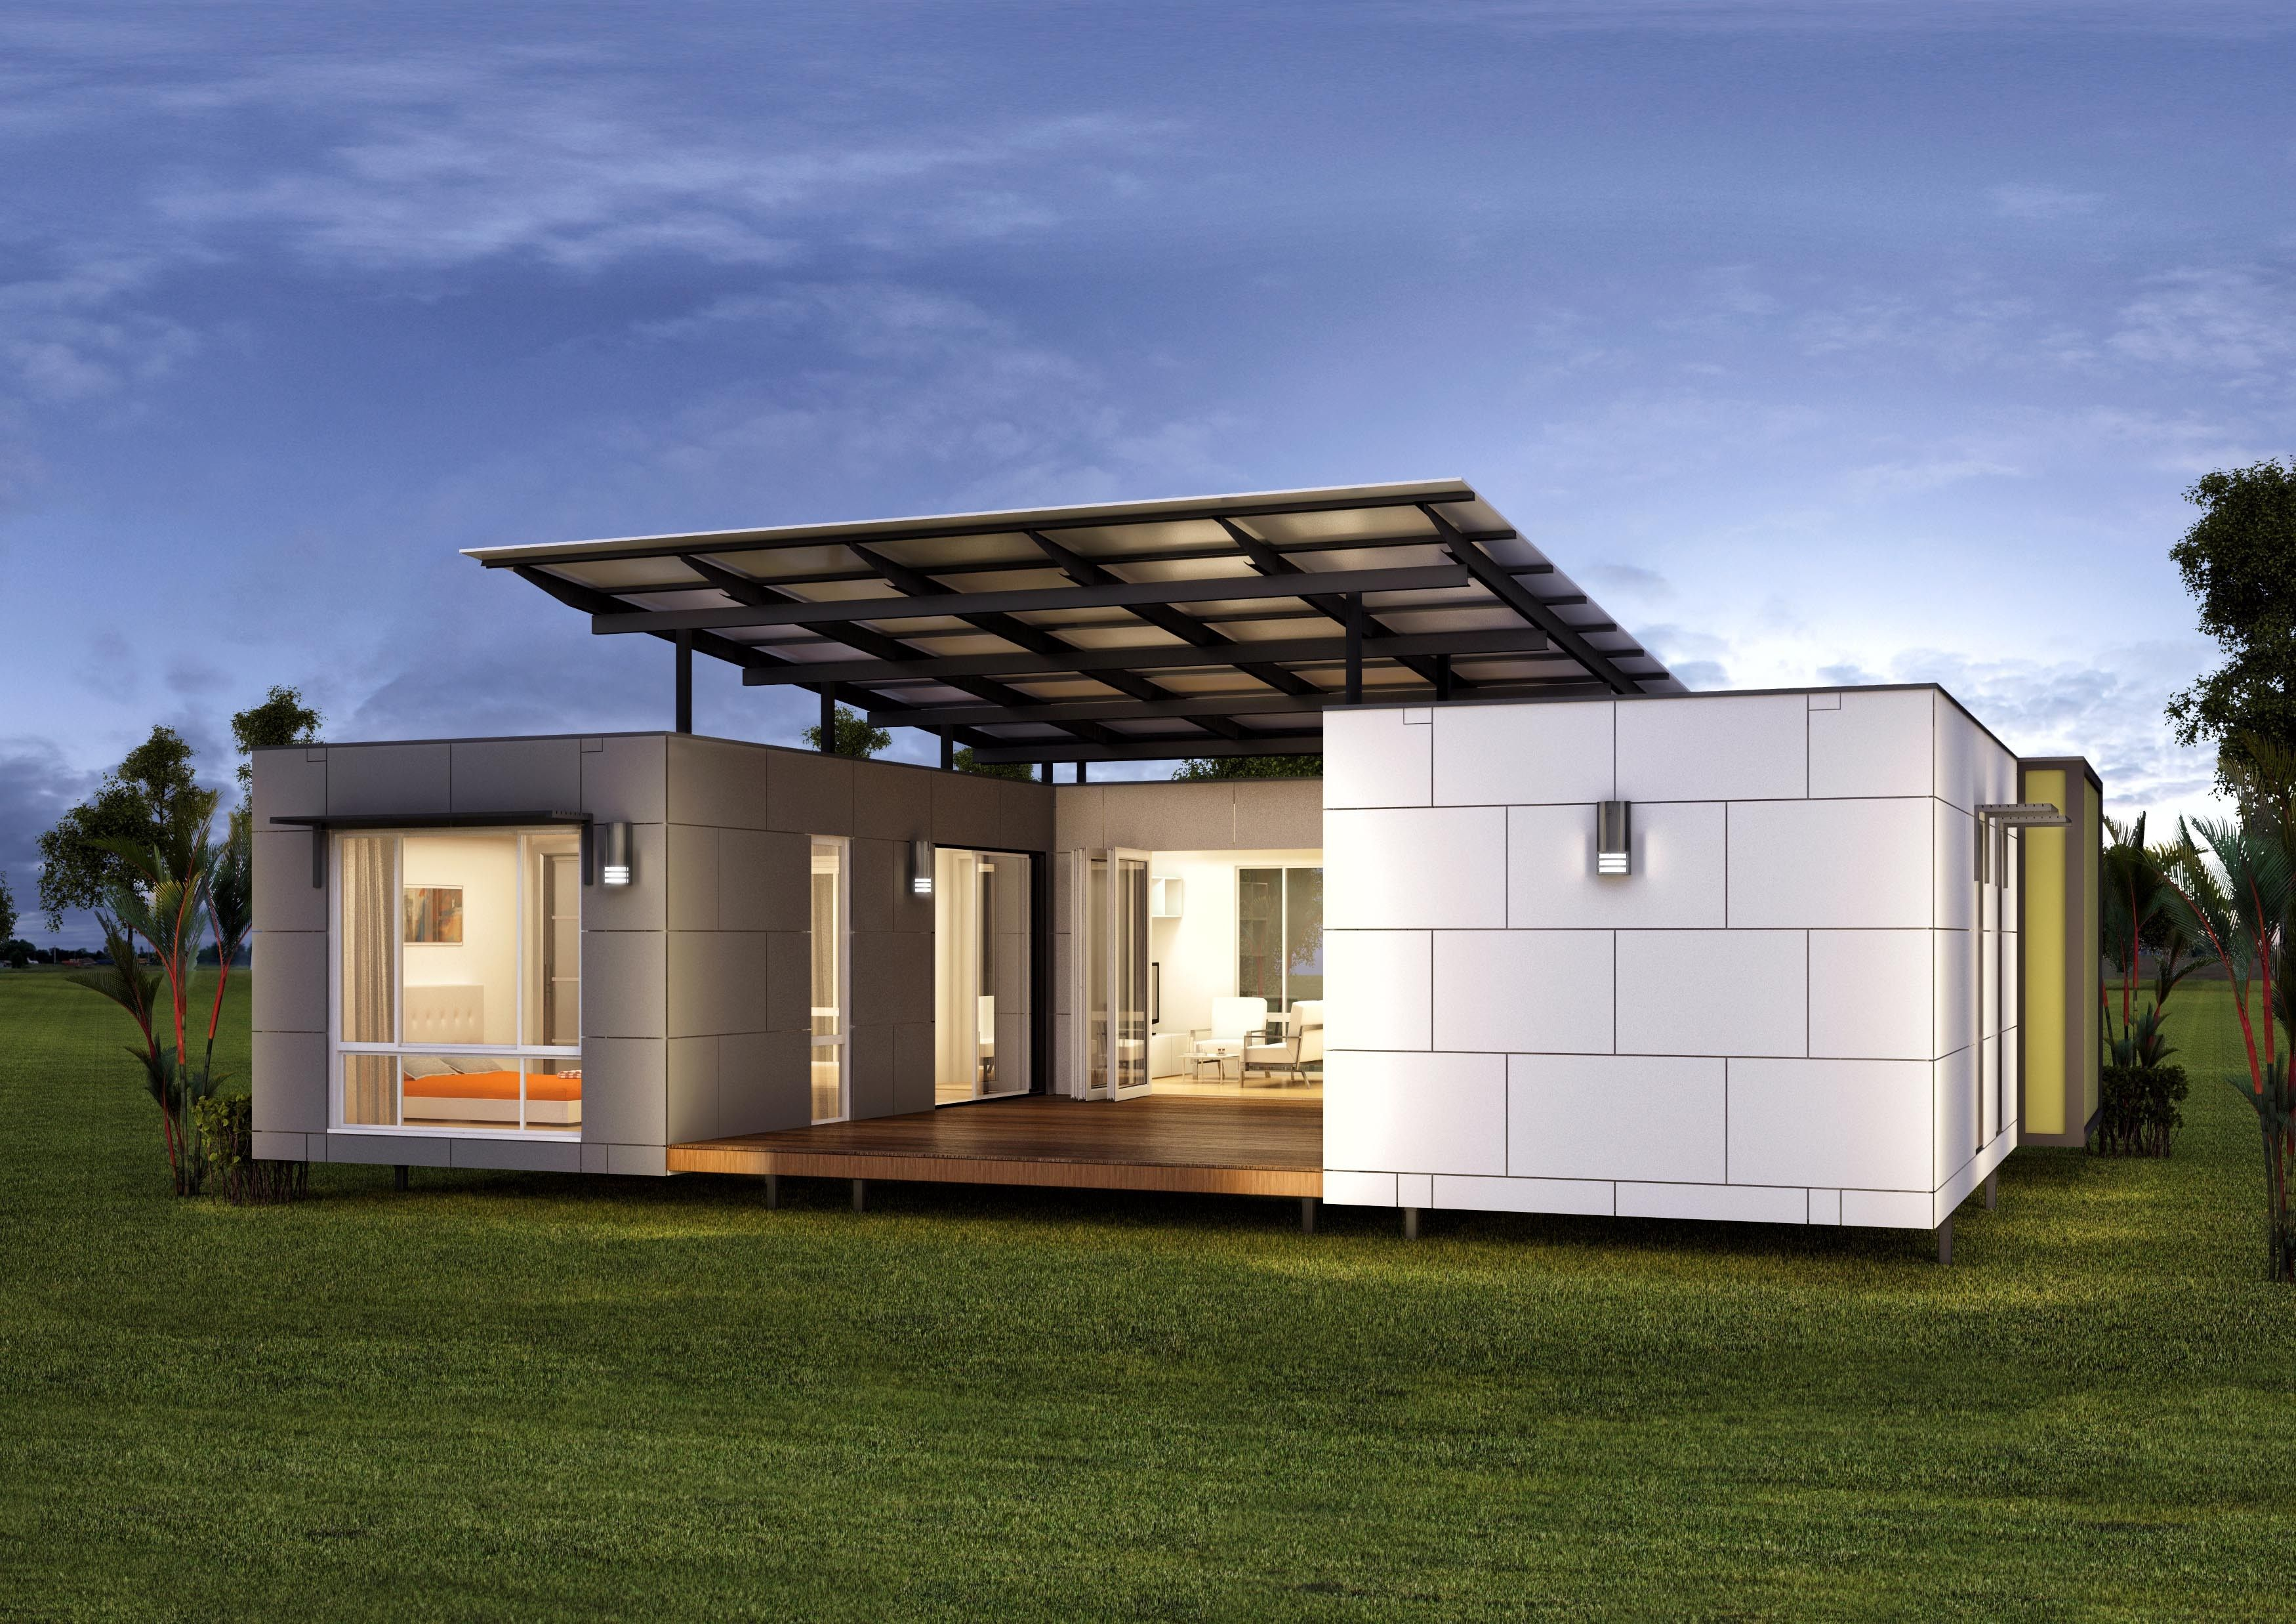 Simplex modular homes for high quality home customize your tastes modular homes under 50k modular home plans nj simplex modular homes